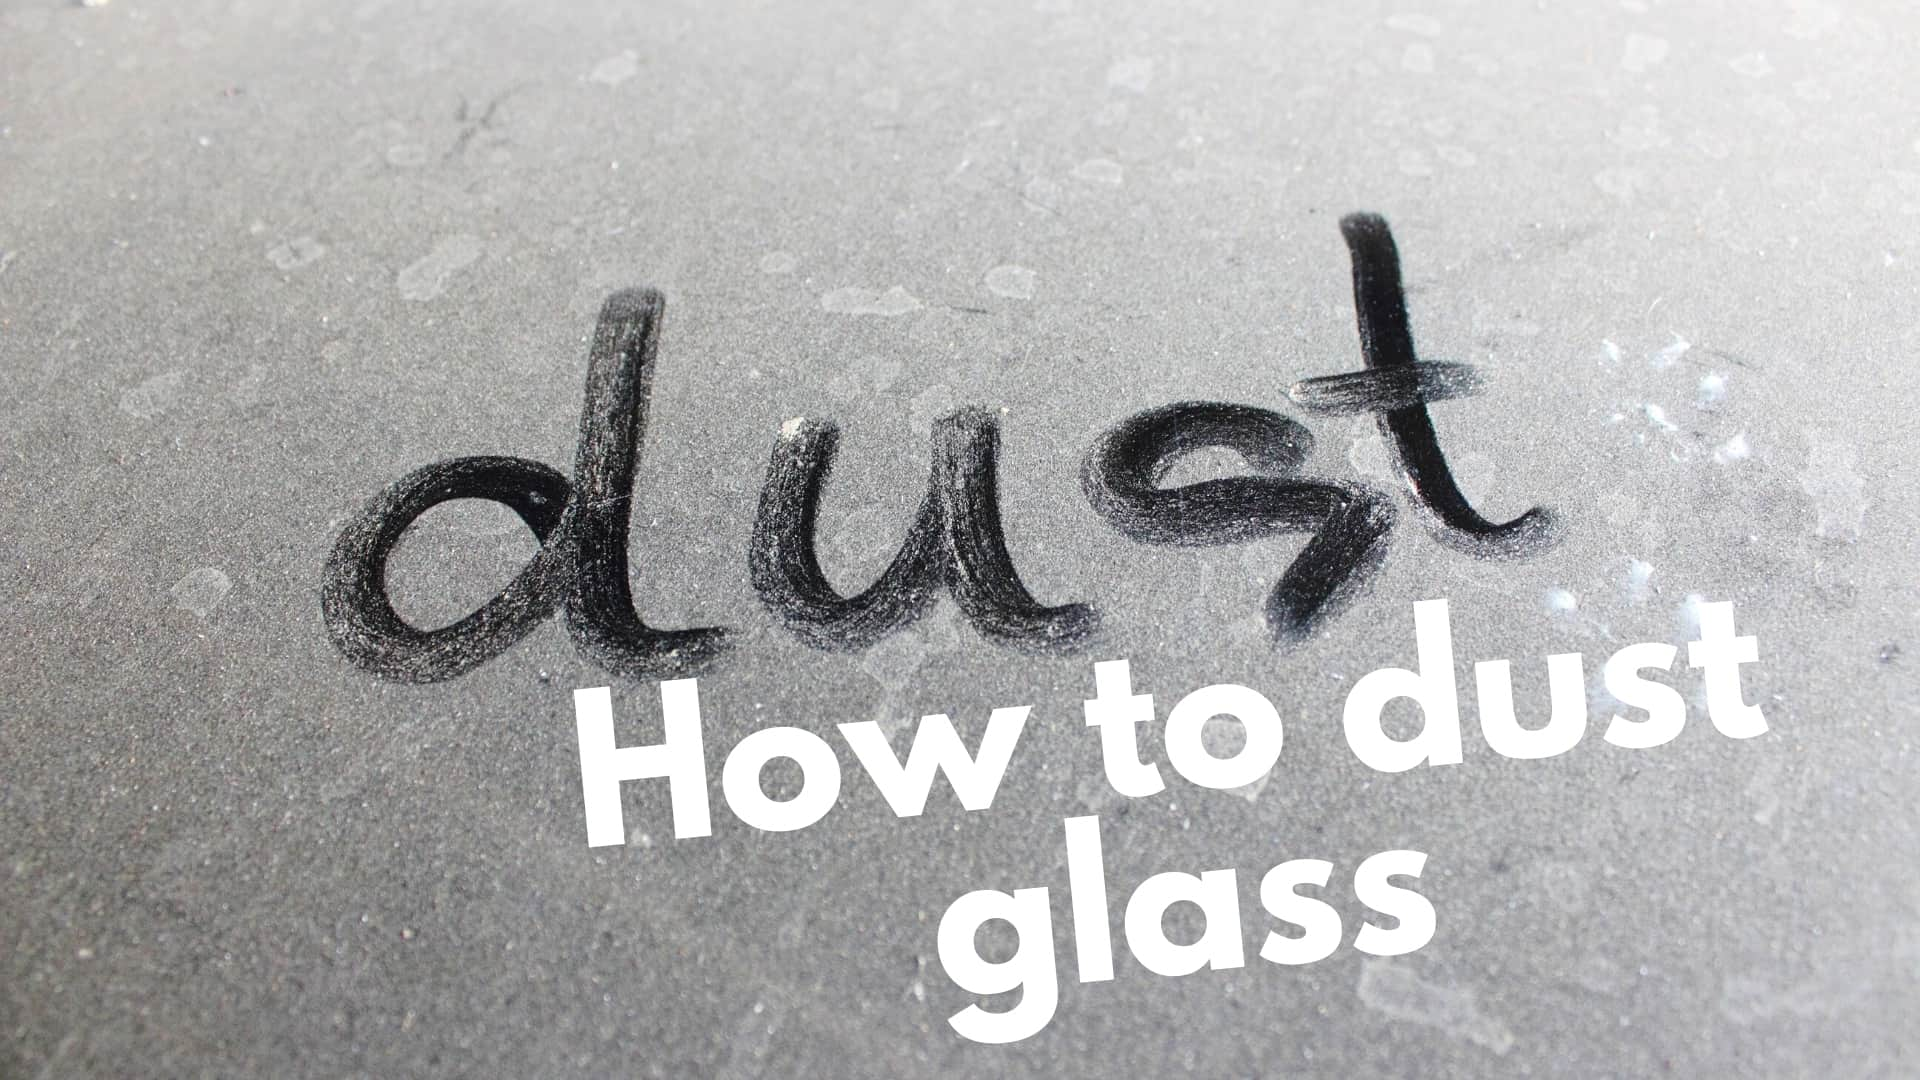 How to dust glass